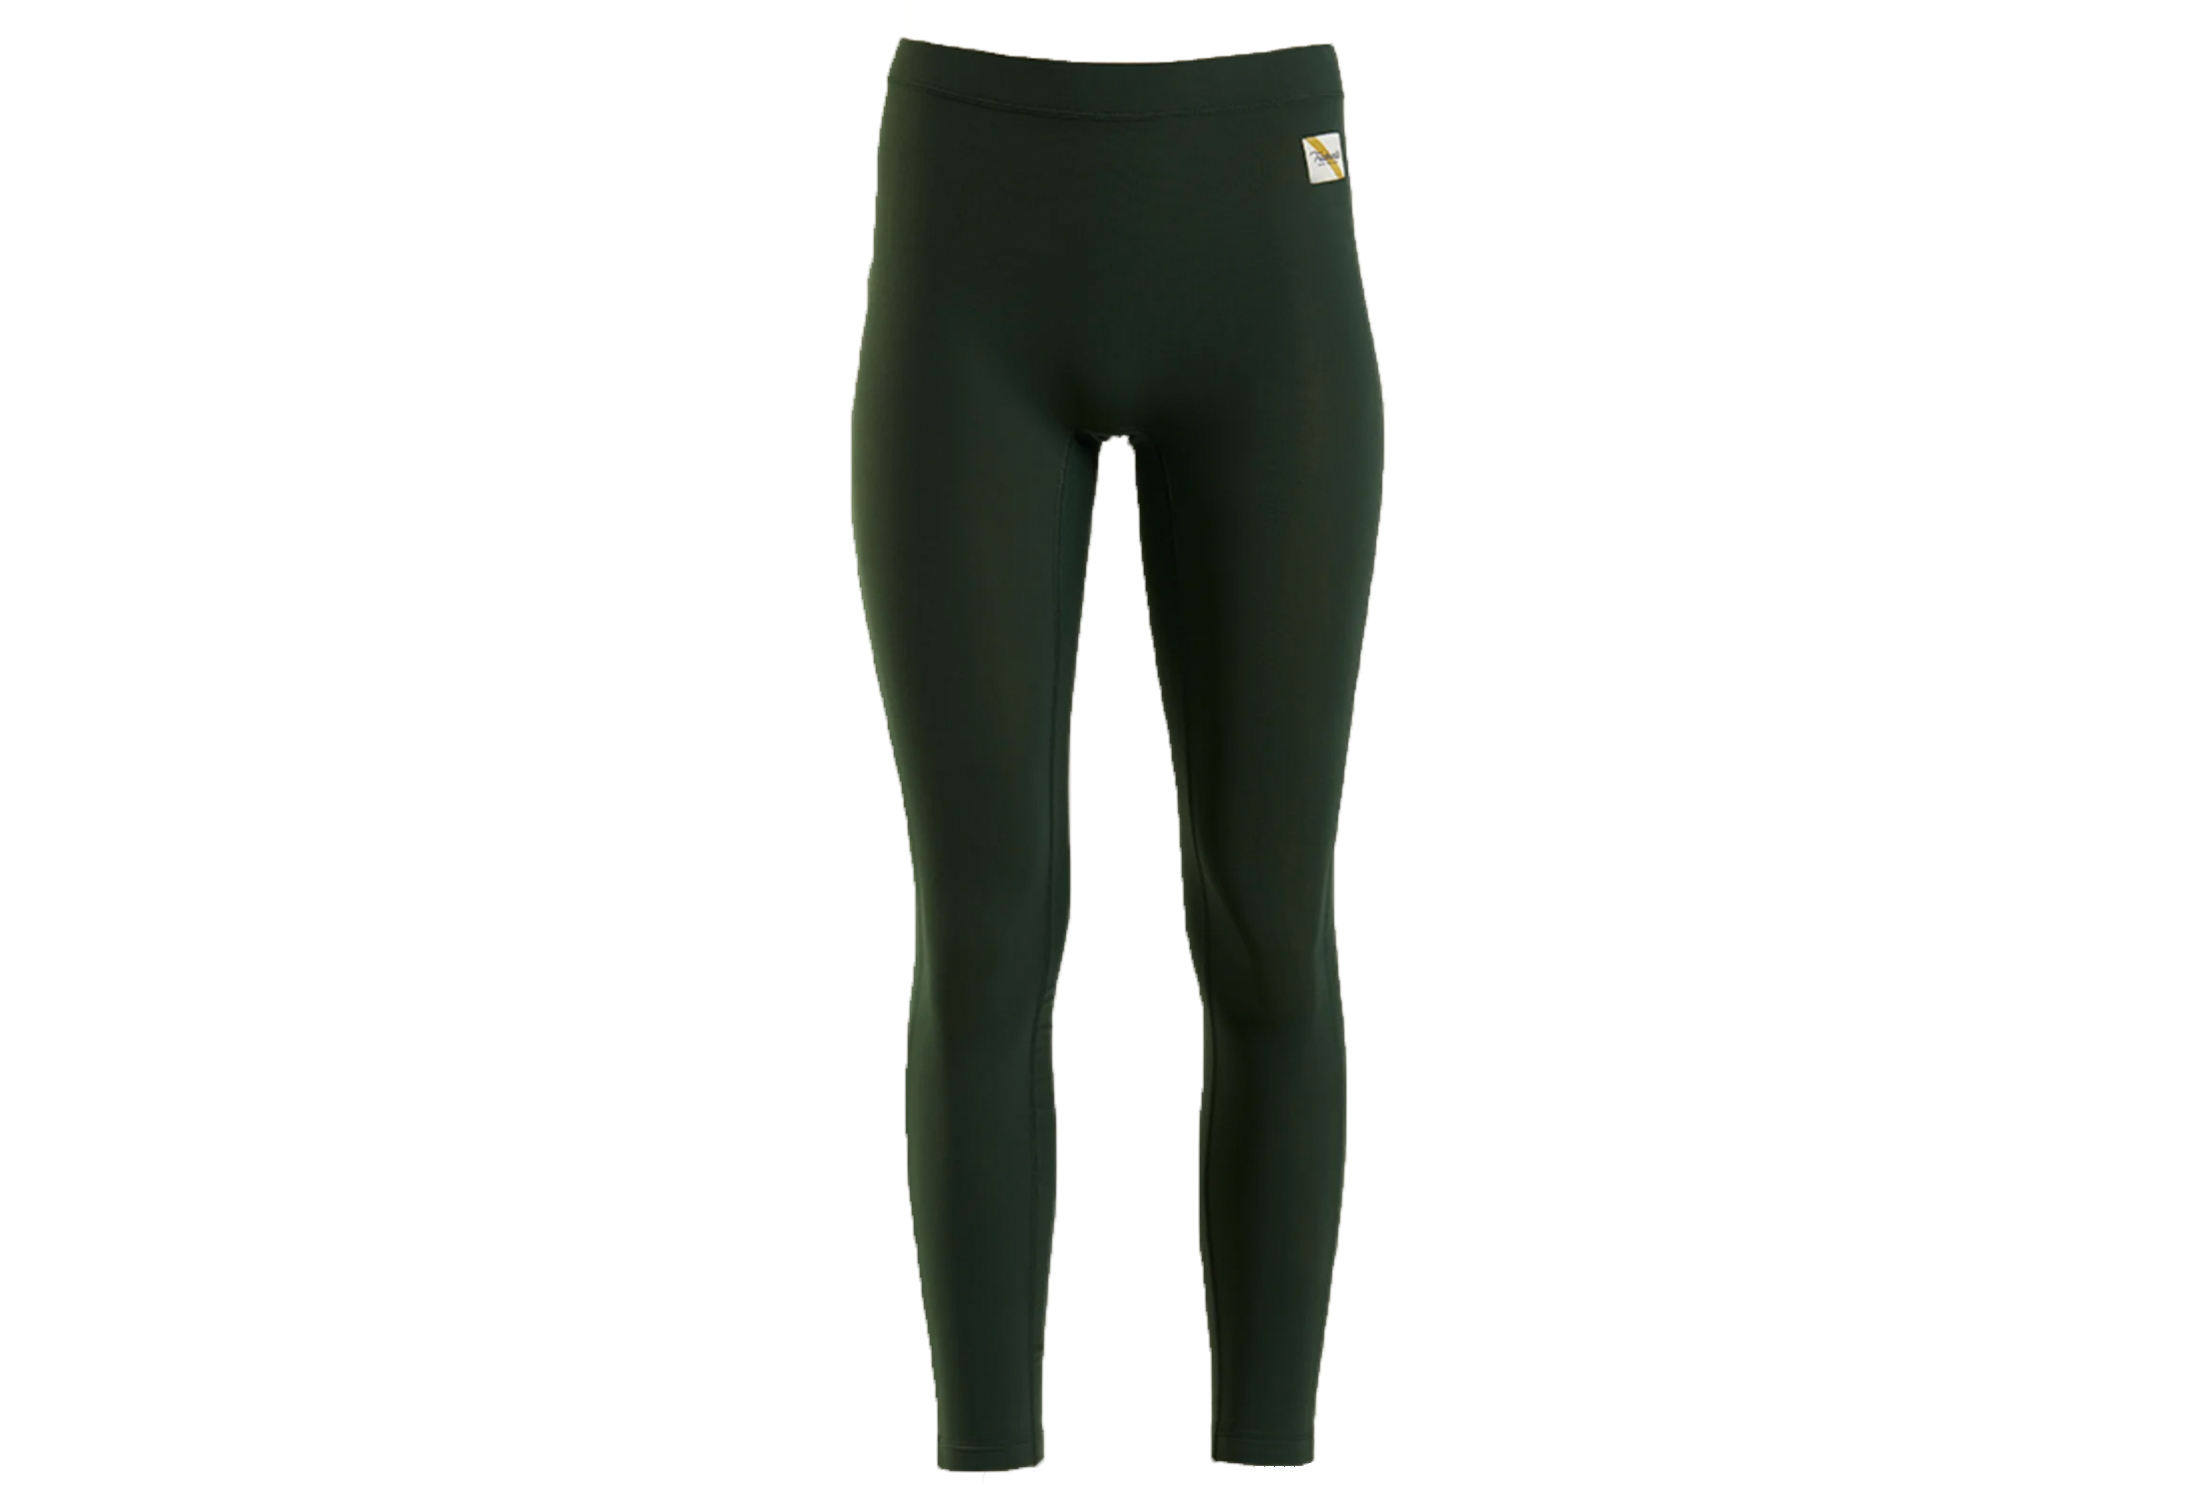 tracksmith tights